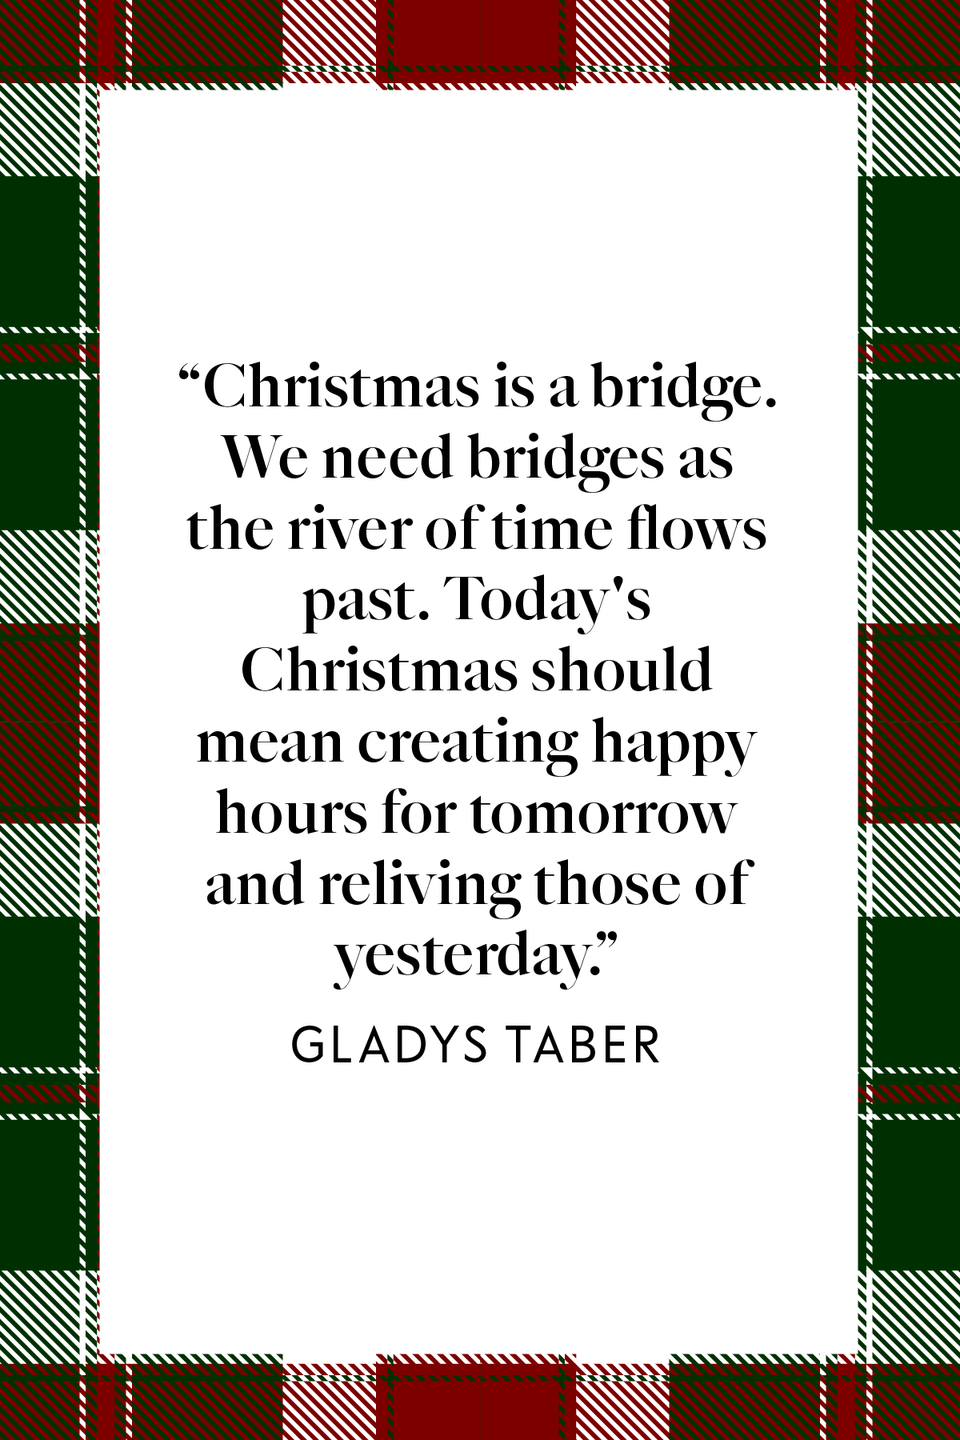 "<p>""Christmas is a bridge. We need bridges as the river of time flows past. Today's Christmas should mean creating happy hours for tomorrow and reliving those of yesterday,"" author and columnist Gladys Taber wrote in her book <em><a href=""https://www.amazon.com/Still-Cove-Journal-Gladys-Taber/dp/0060142278?tag=syn-yahoo-20&ascsubtag=%5Bartid%7C10072.g.34536312%5Bsrc%7Cyahoo-us"" rel=""nofollow noopener"" target=""_blank"" data-ylk=""slk:Still Cove Journal"" class=""link rapid-noclick-resp"">Still Cove Journal</a></em>.</p>"